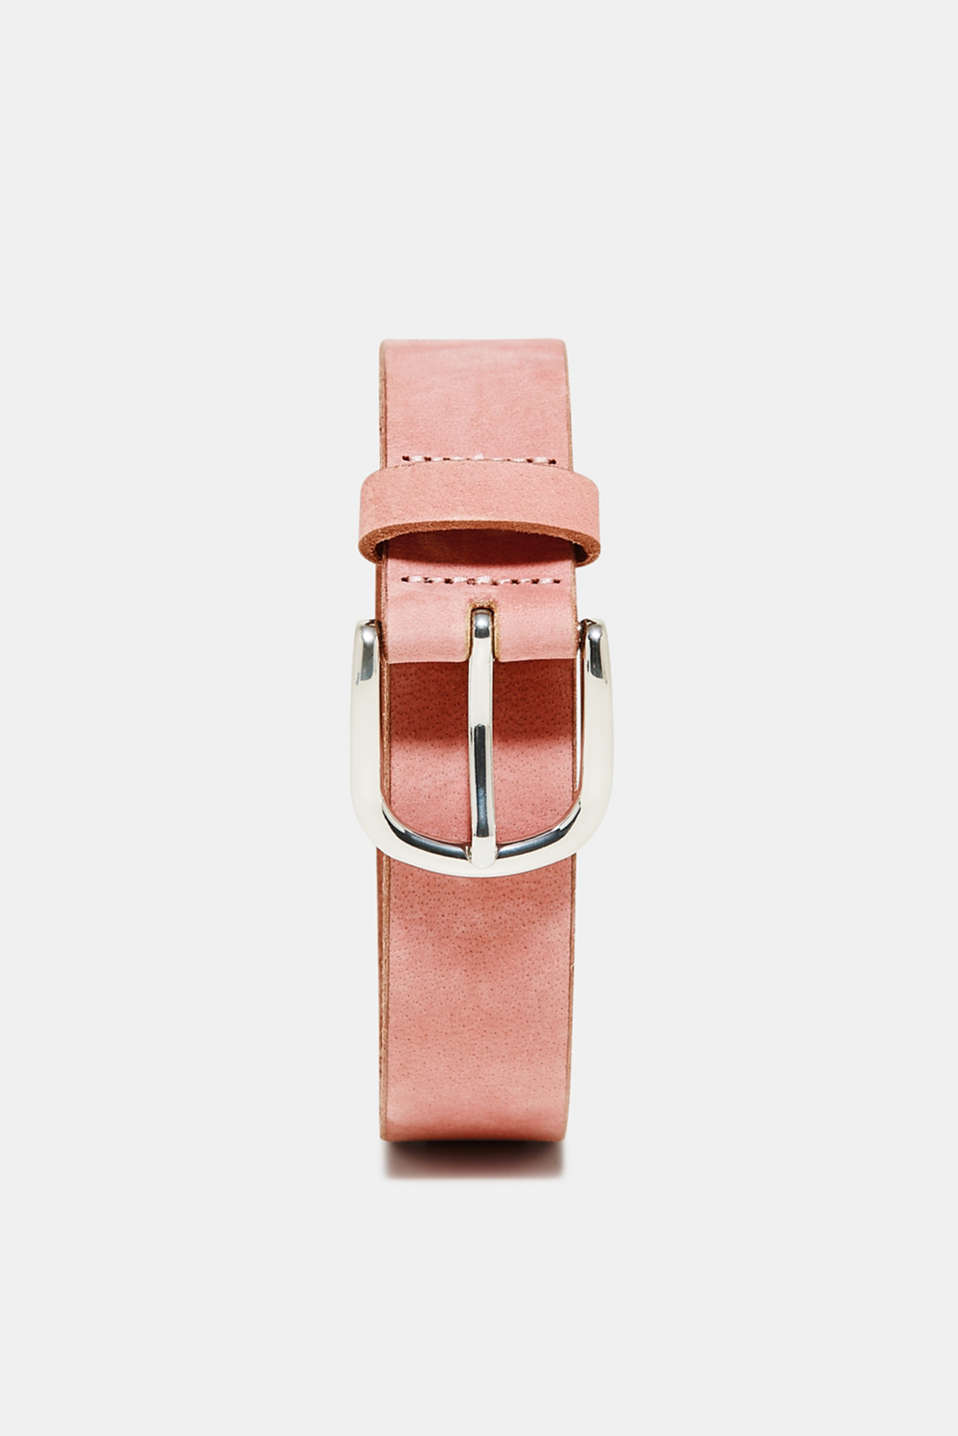 The matte finish and subtle vintage wash gives this belt made of 100% buffalo leather its characteristic look.